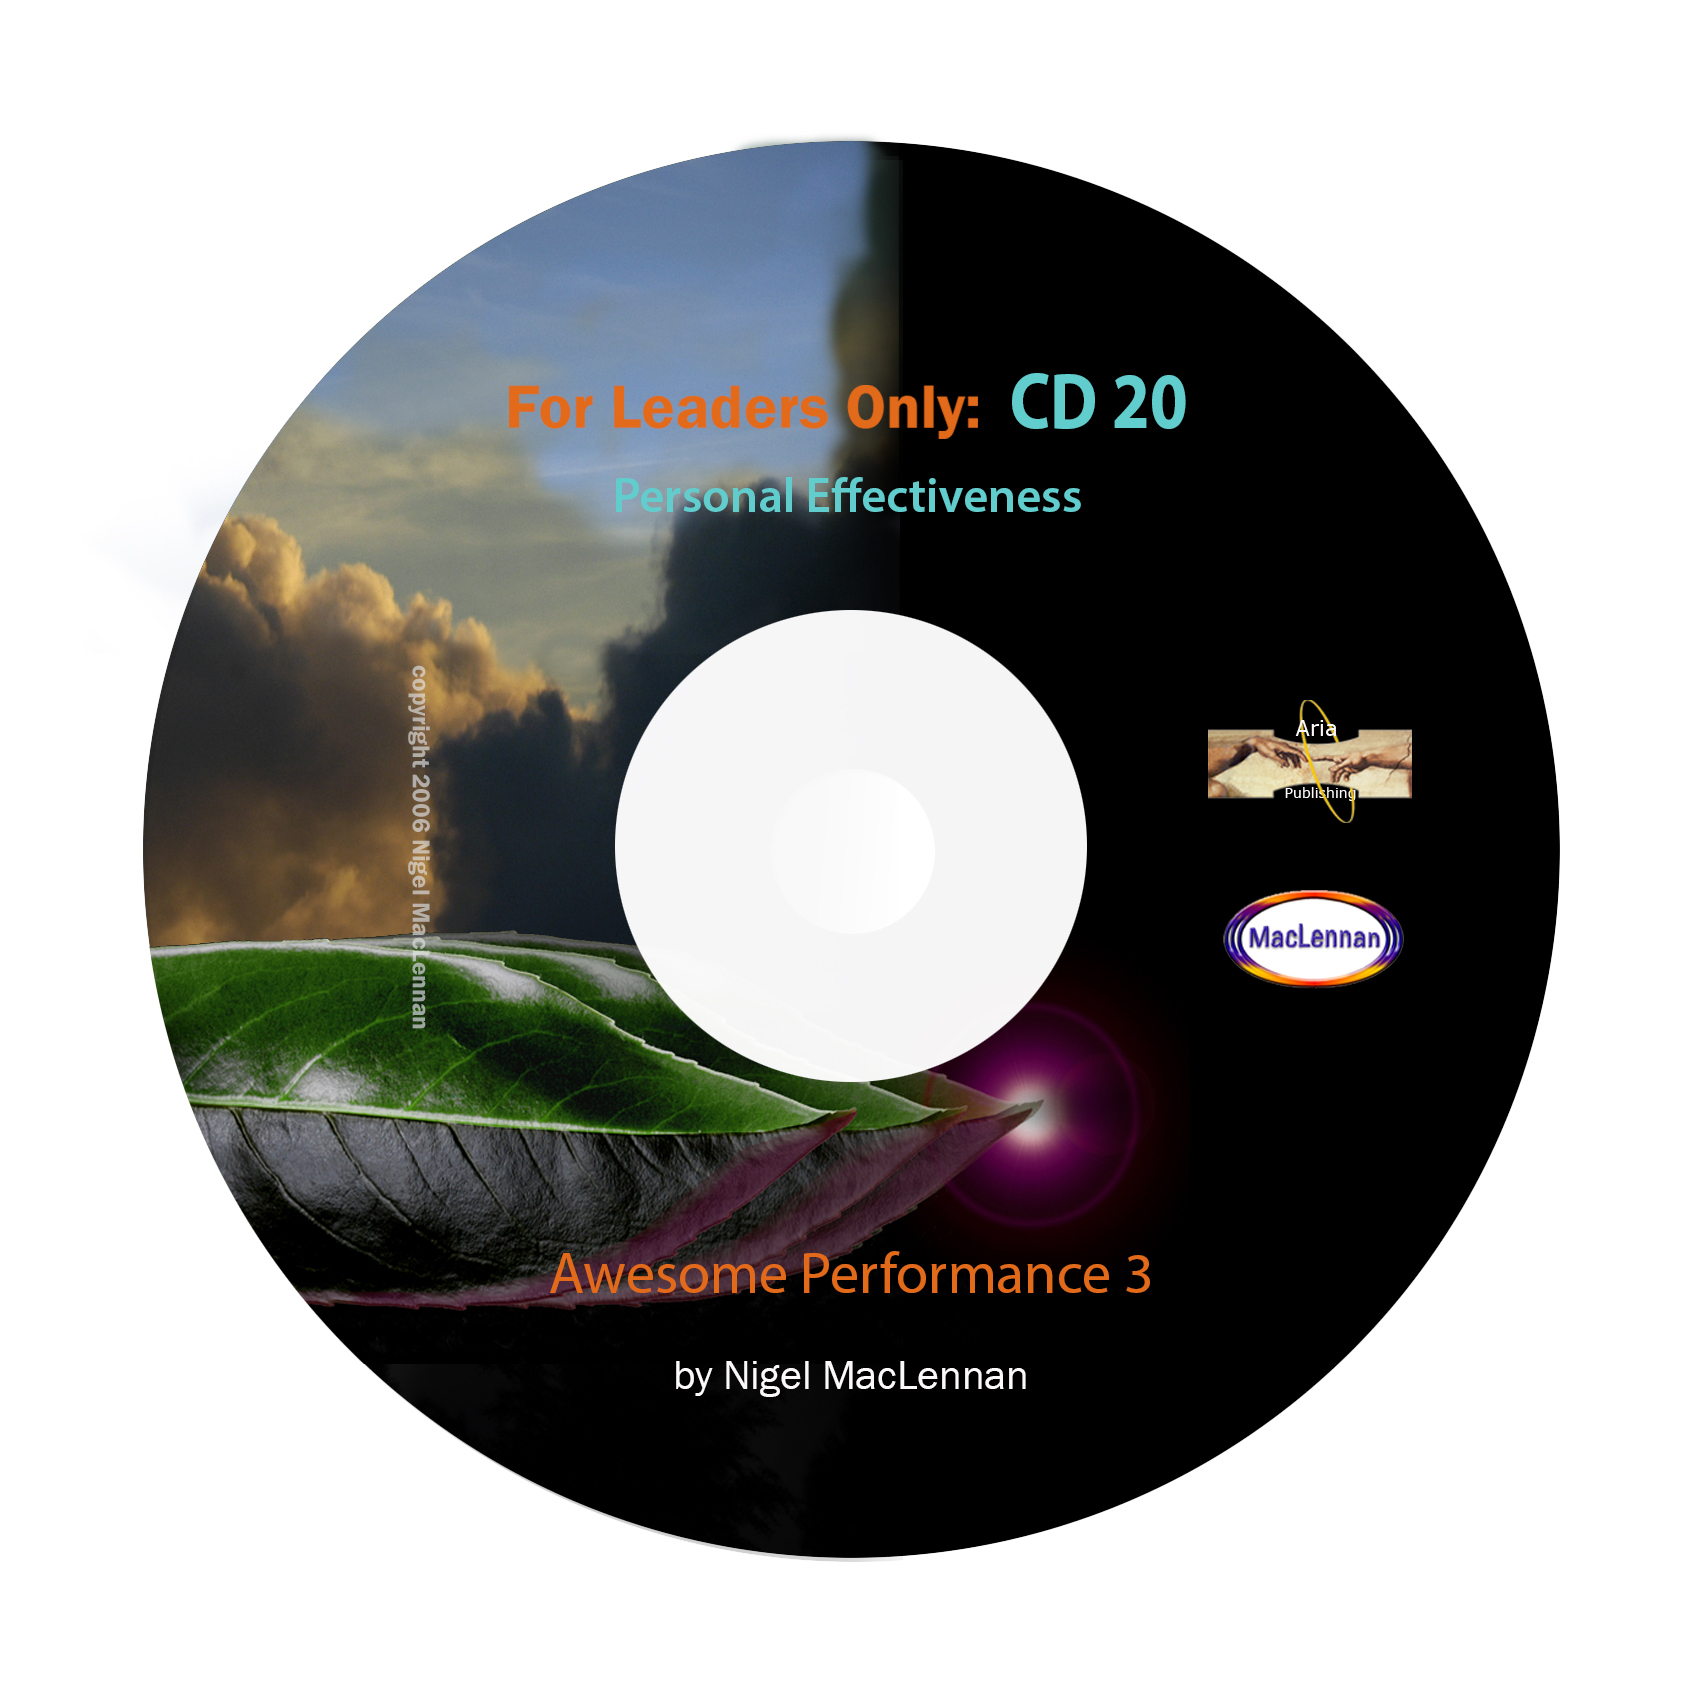 For Leaders Only - Awesome Performance 3 CD